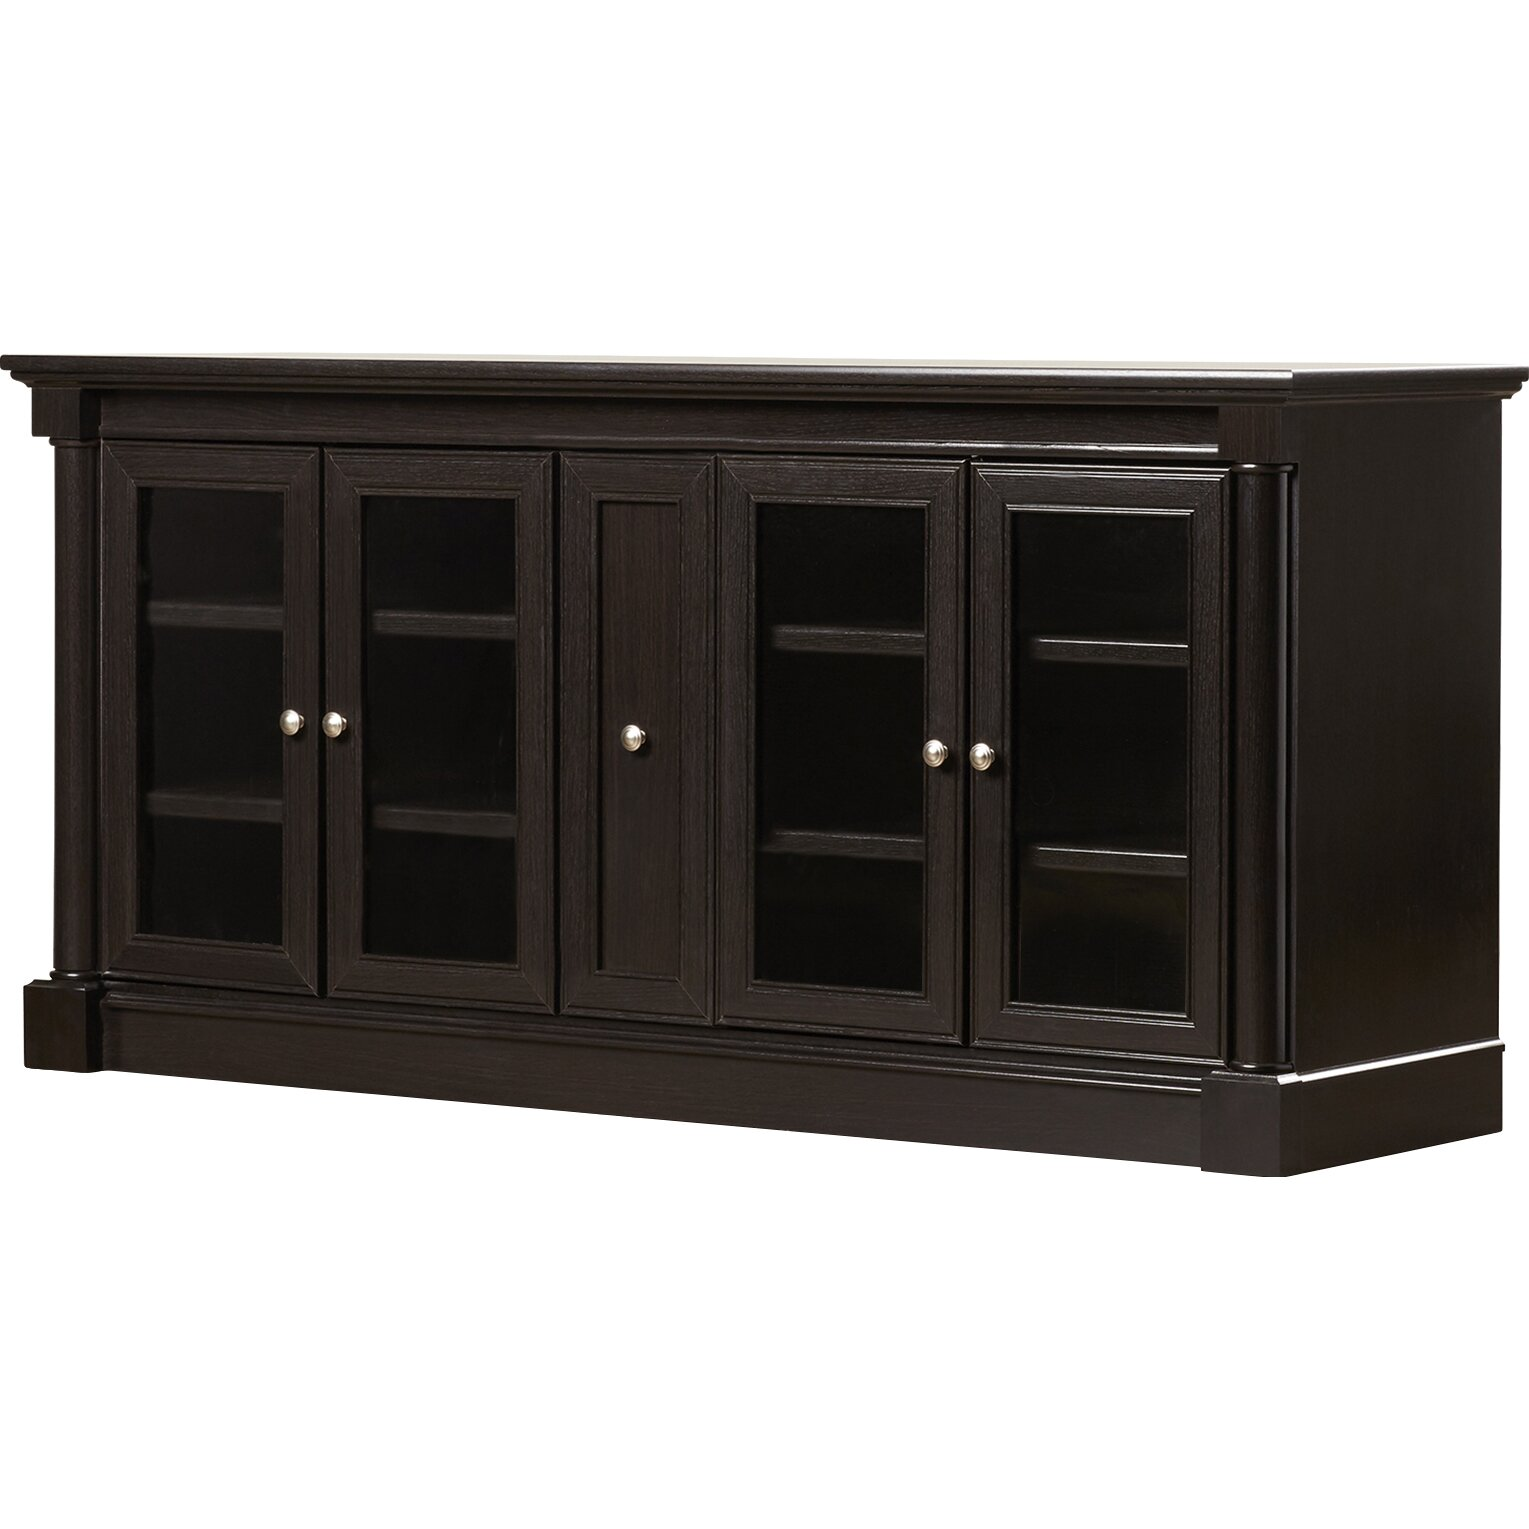 Darby Home Co Hennepin Credenza TV Stand & Reviews